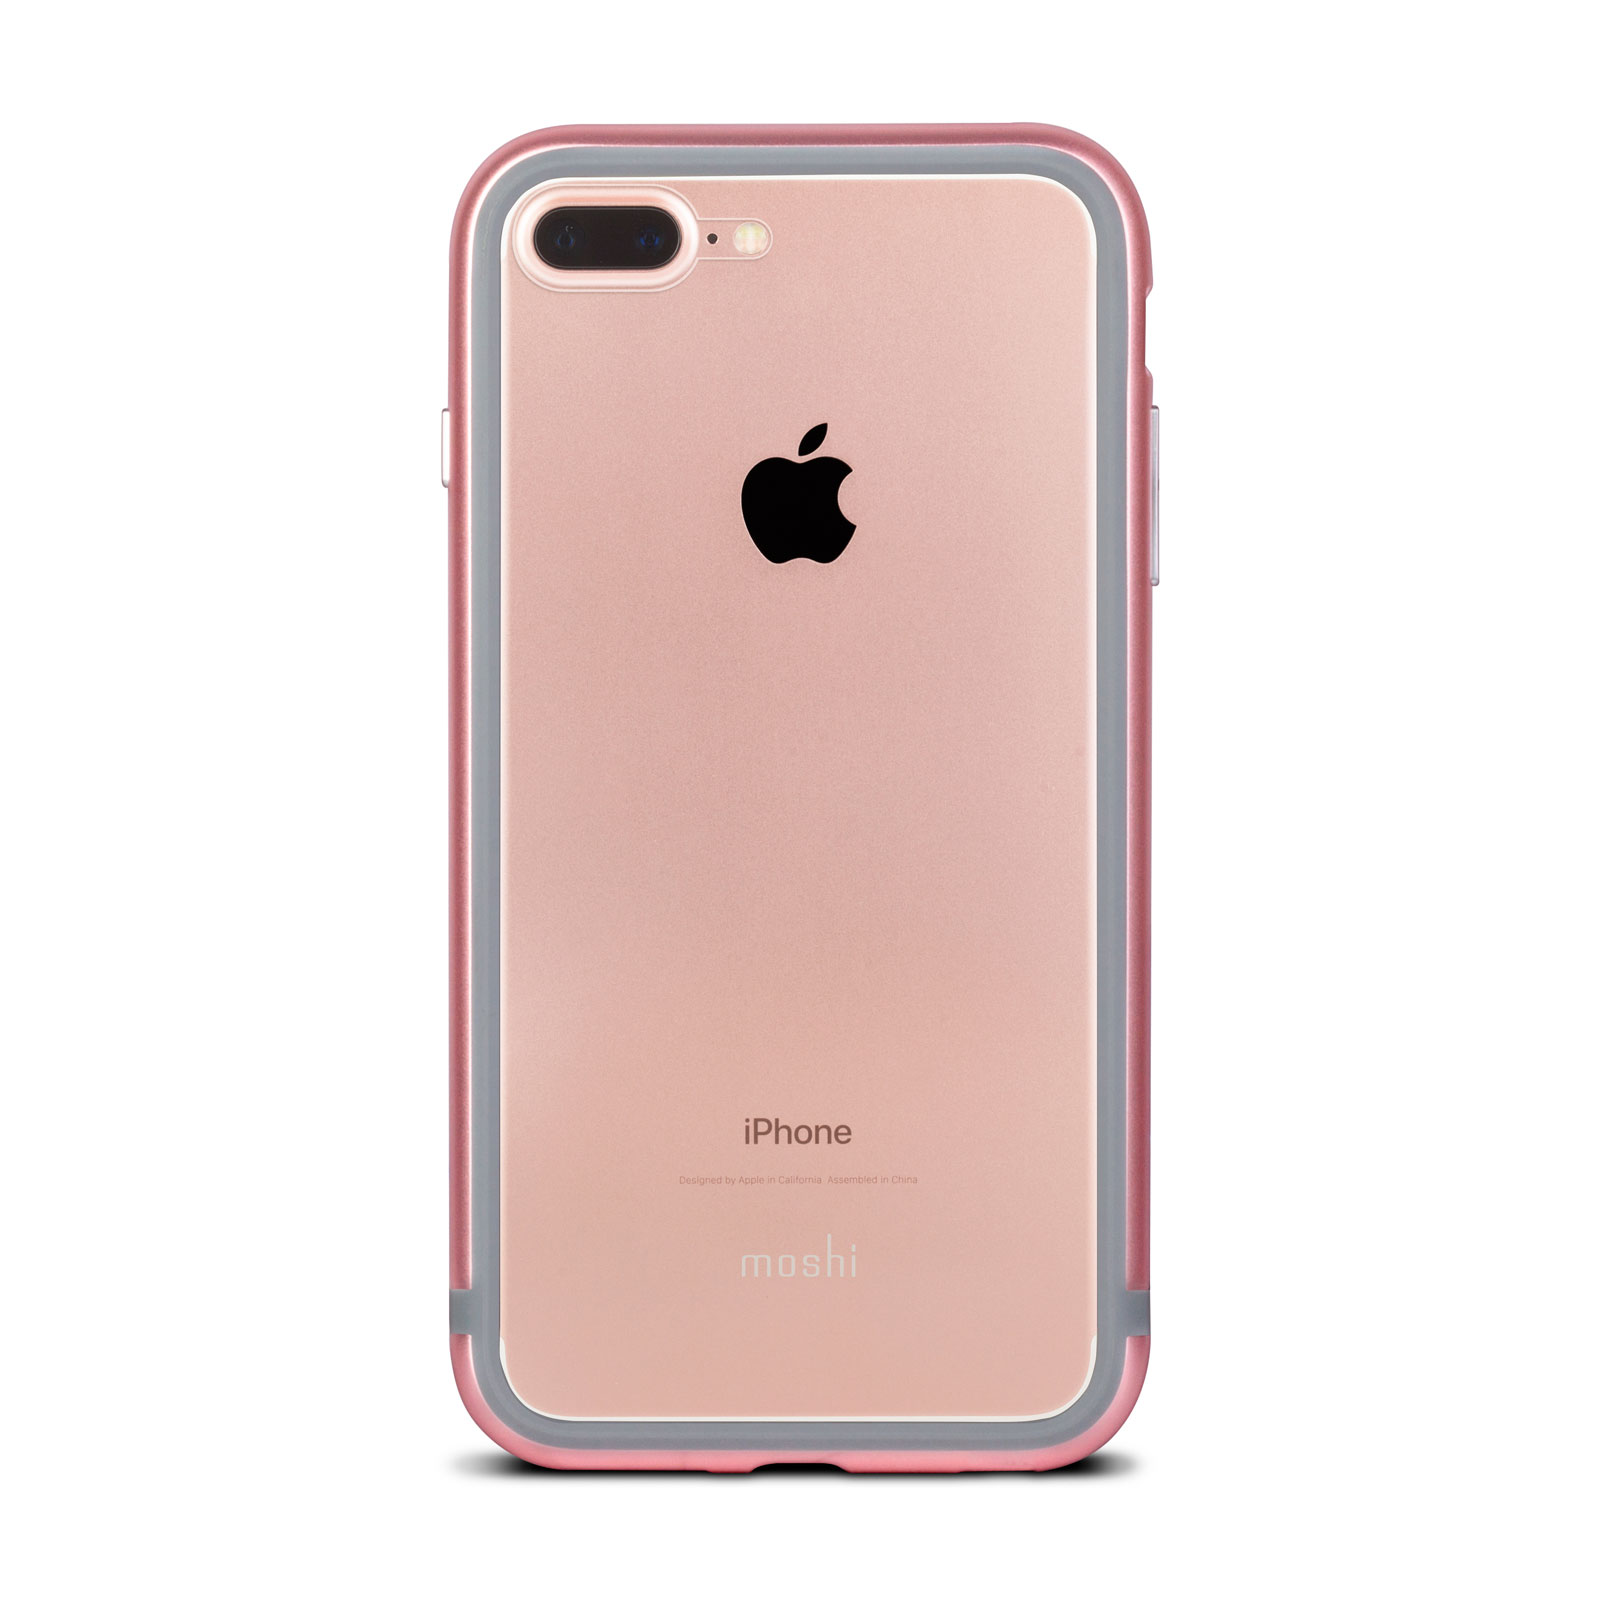 8 plus iphone case